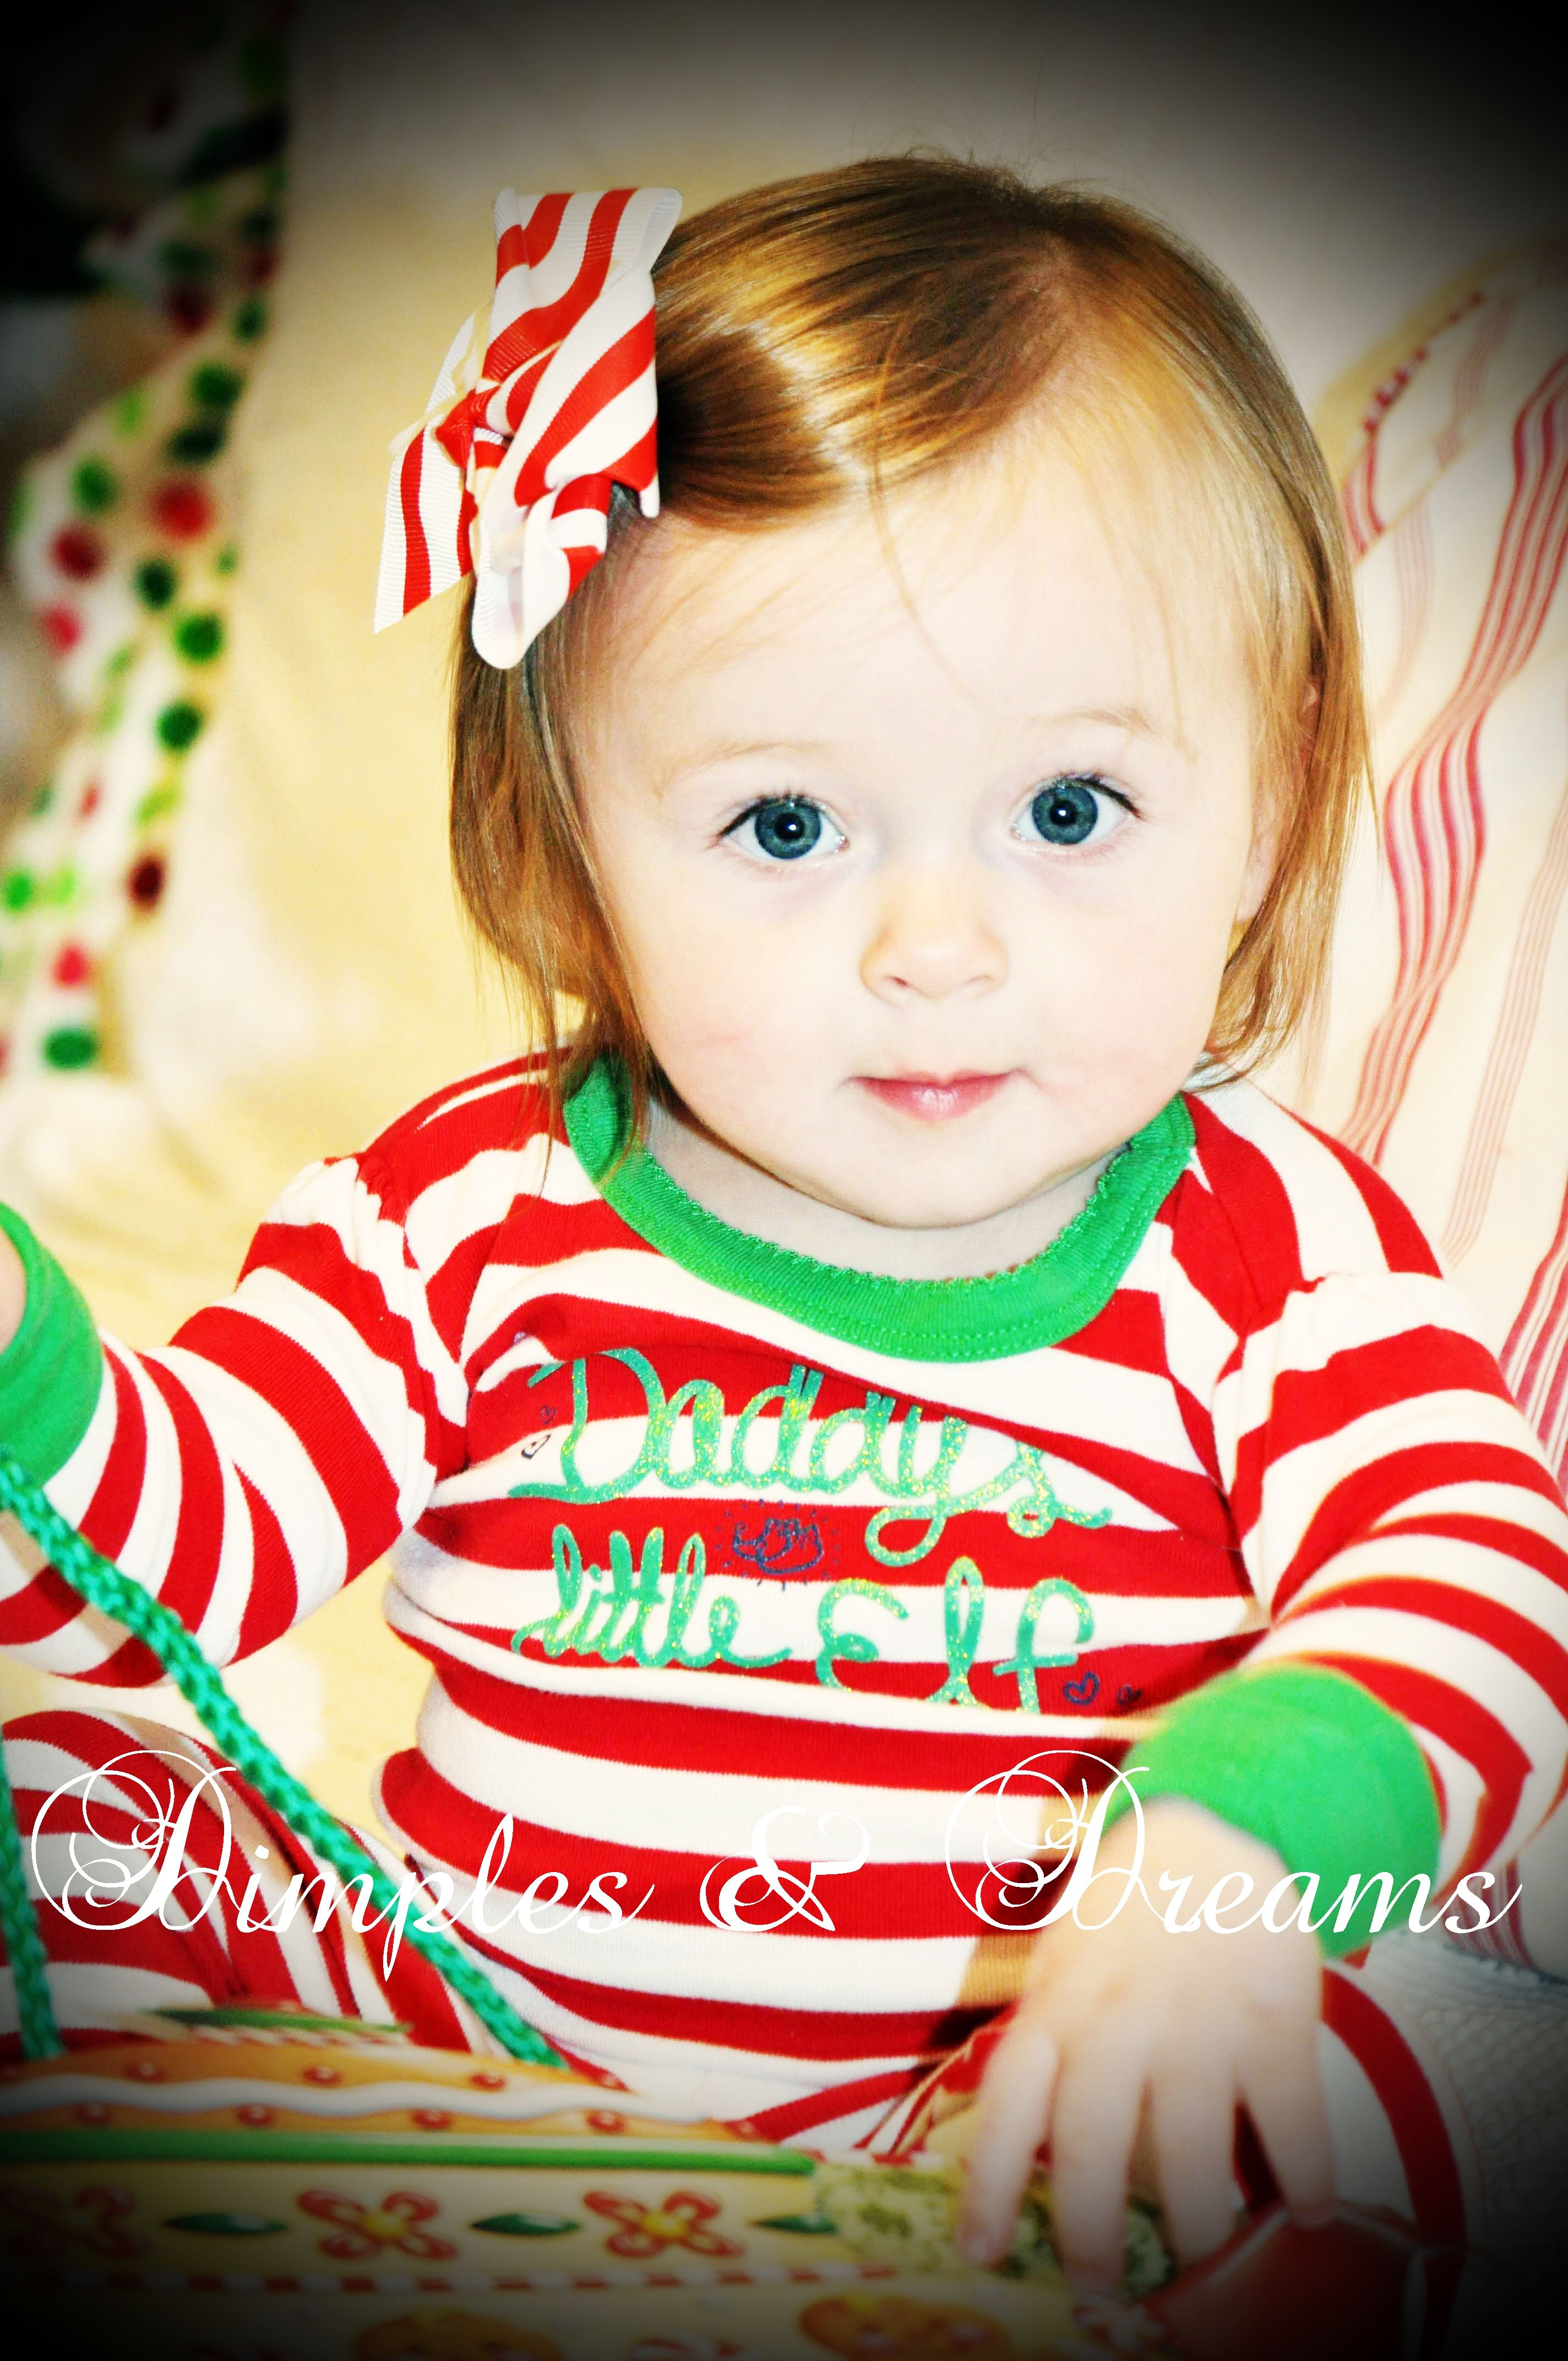 Twas The Night Before Christmas Mini Session Dimples Dreams Photography Van Alstyne T Christmas Mini Sessions The Night Before Christmas Dream Photography